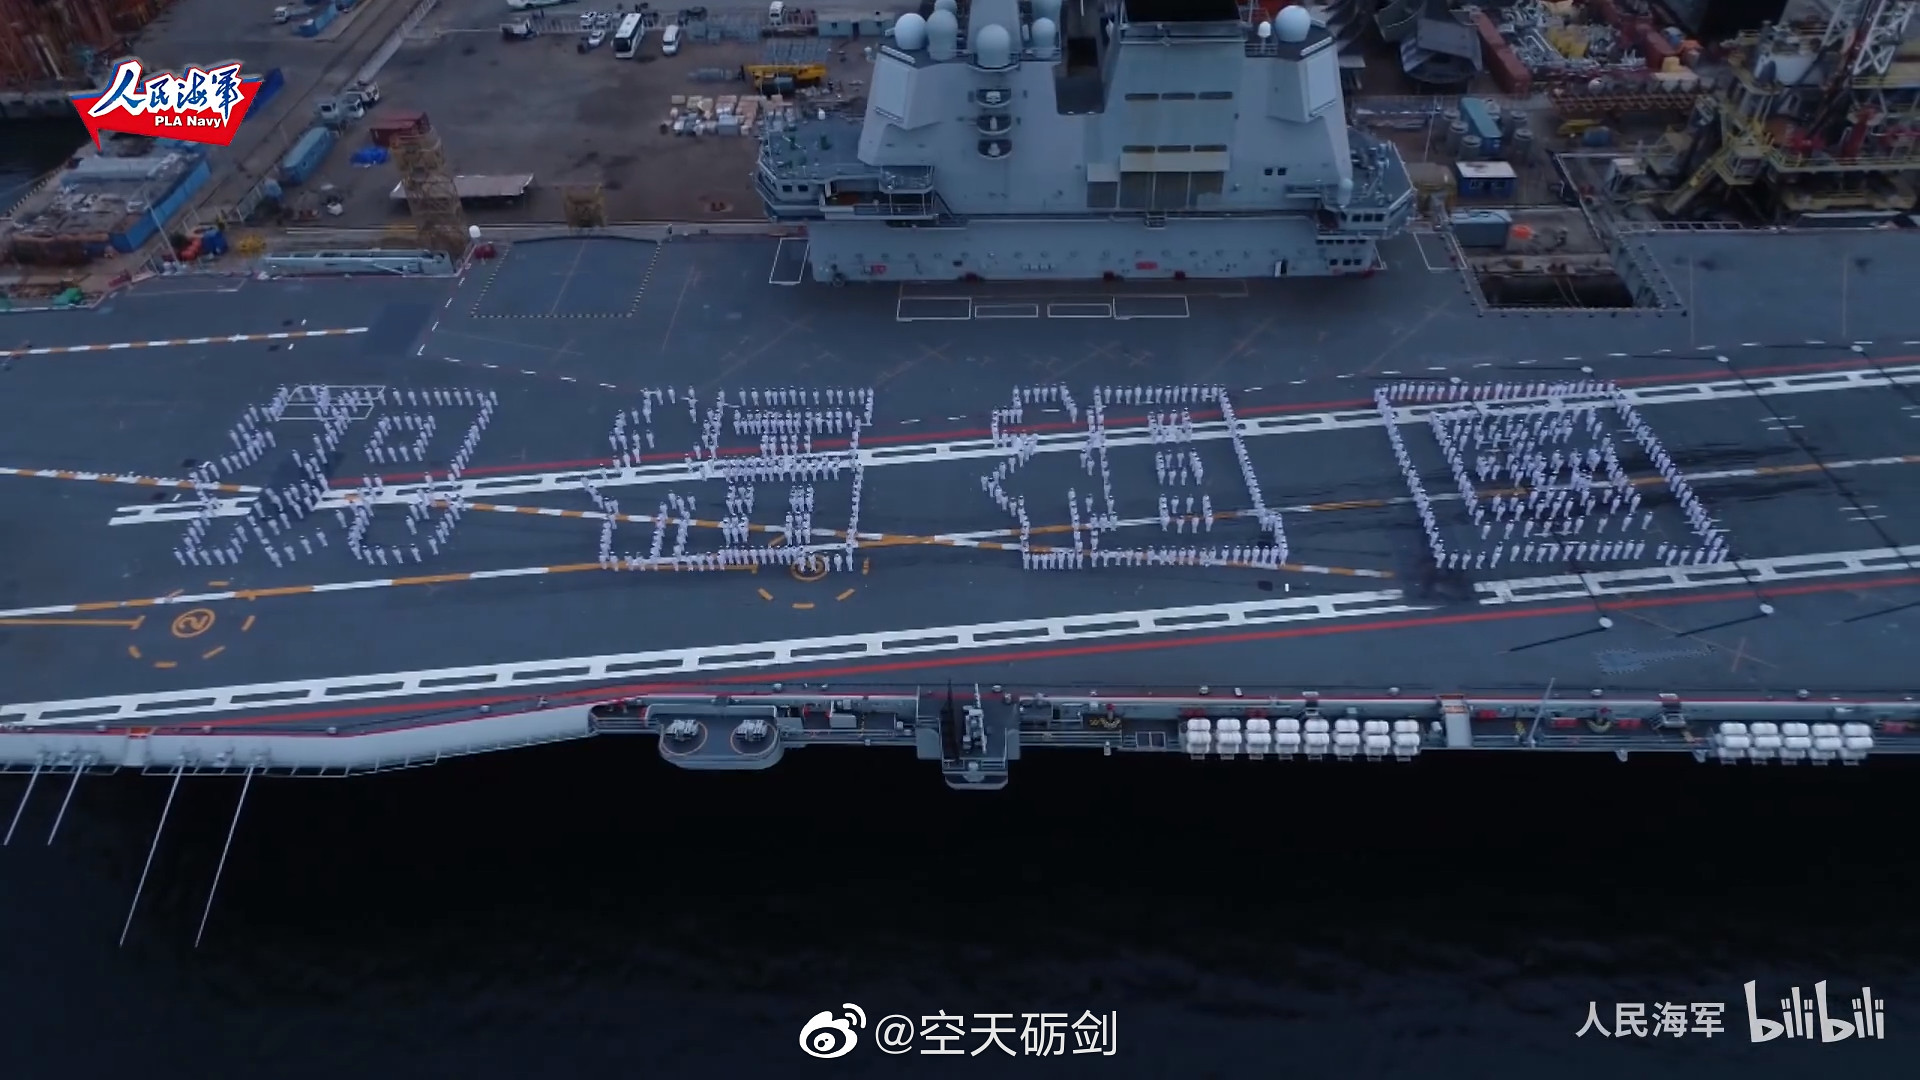 Chinese aircraft carrier program - Page 7 Shangd10